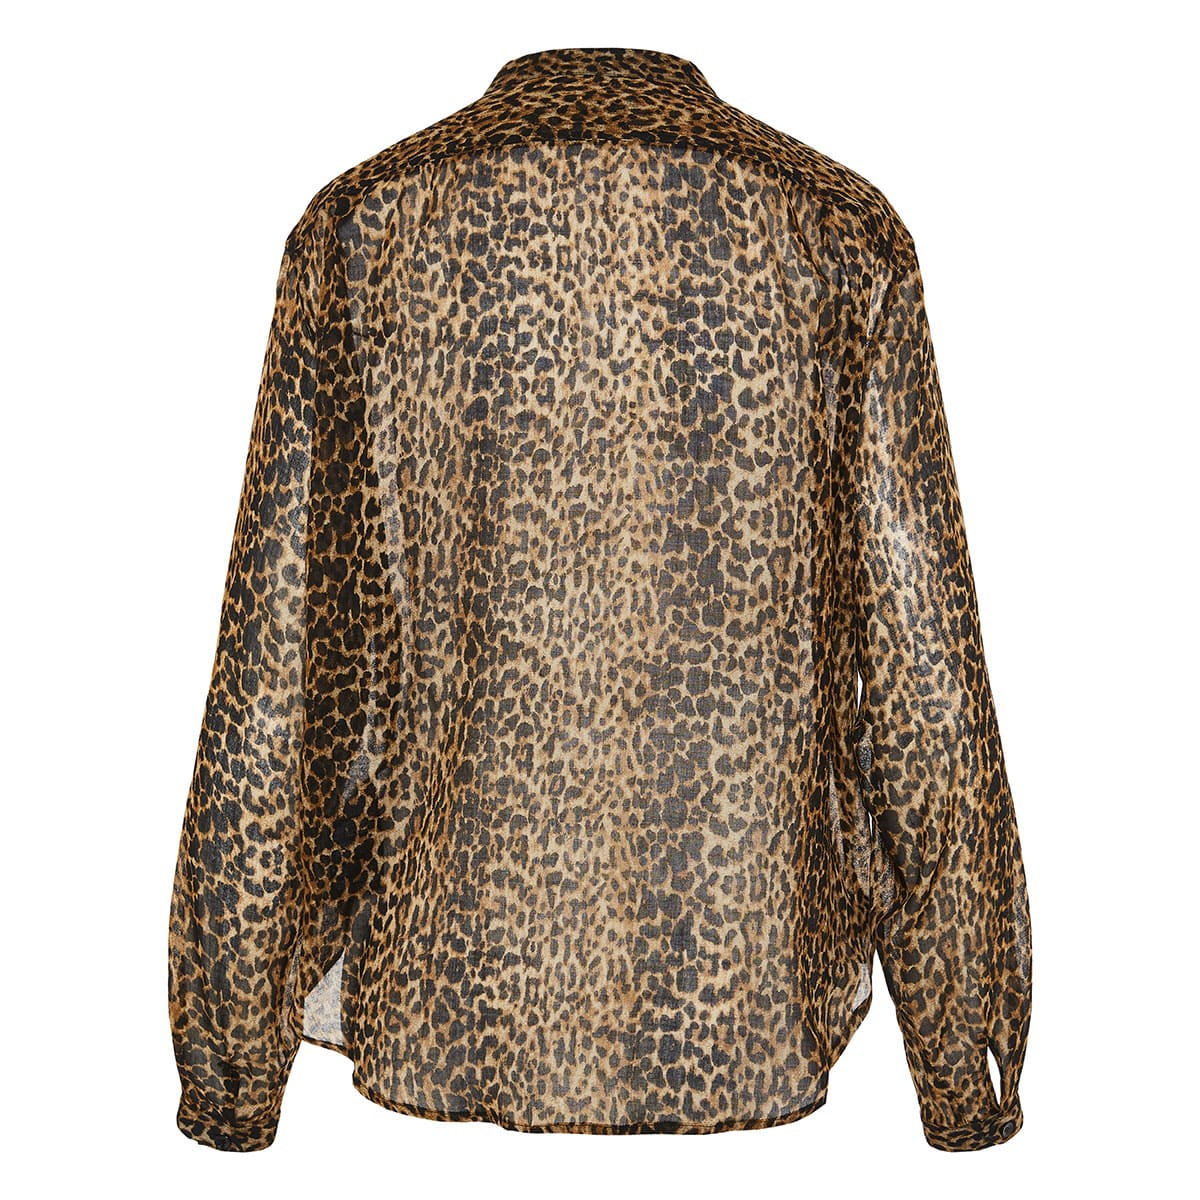 Leopard knotted shirt